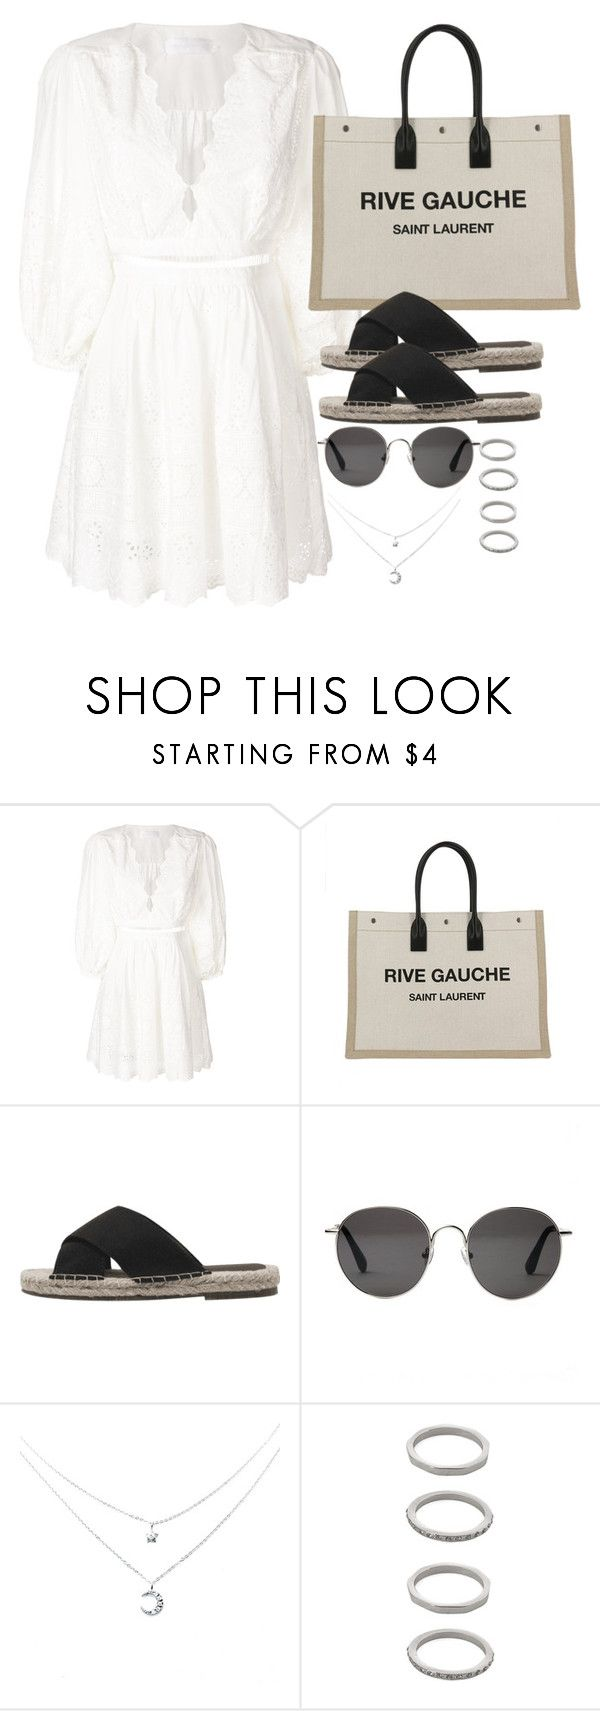 """Untitled #5215"" by theeuropeancloset ❤ liked on Polyvore featuring Zimmermann, Yves Saint Laurent, The Row and Forever 21"